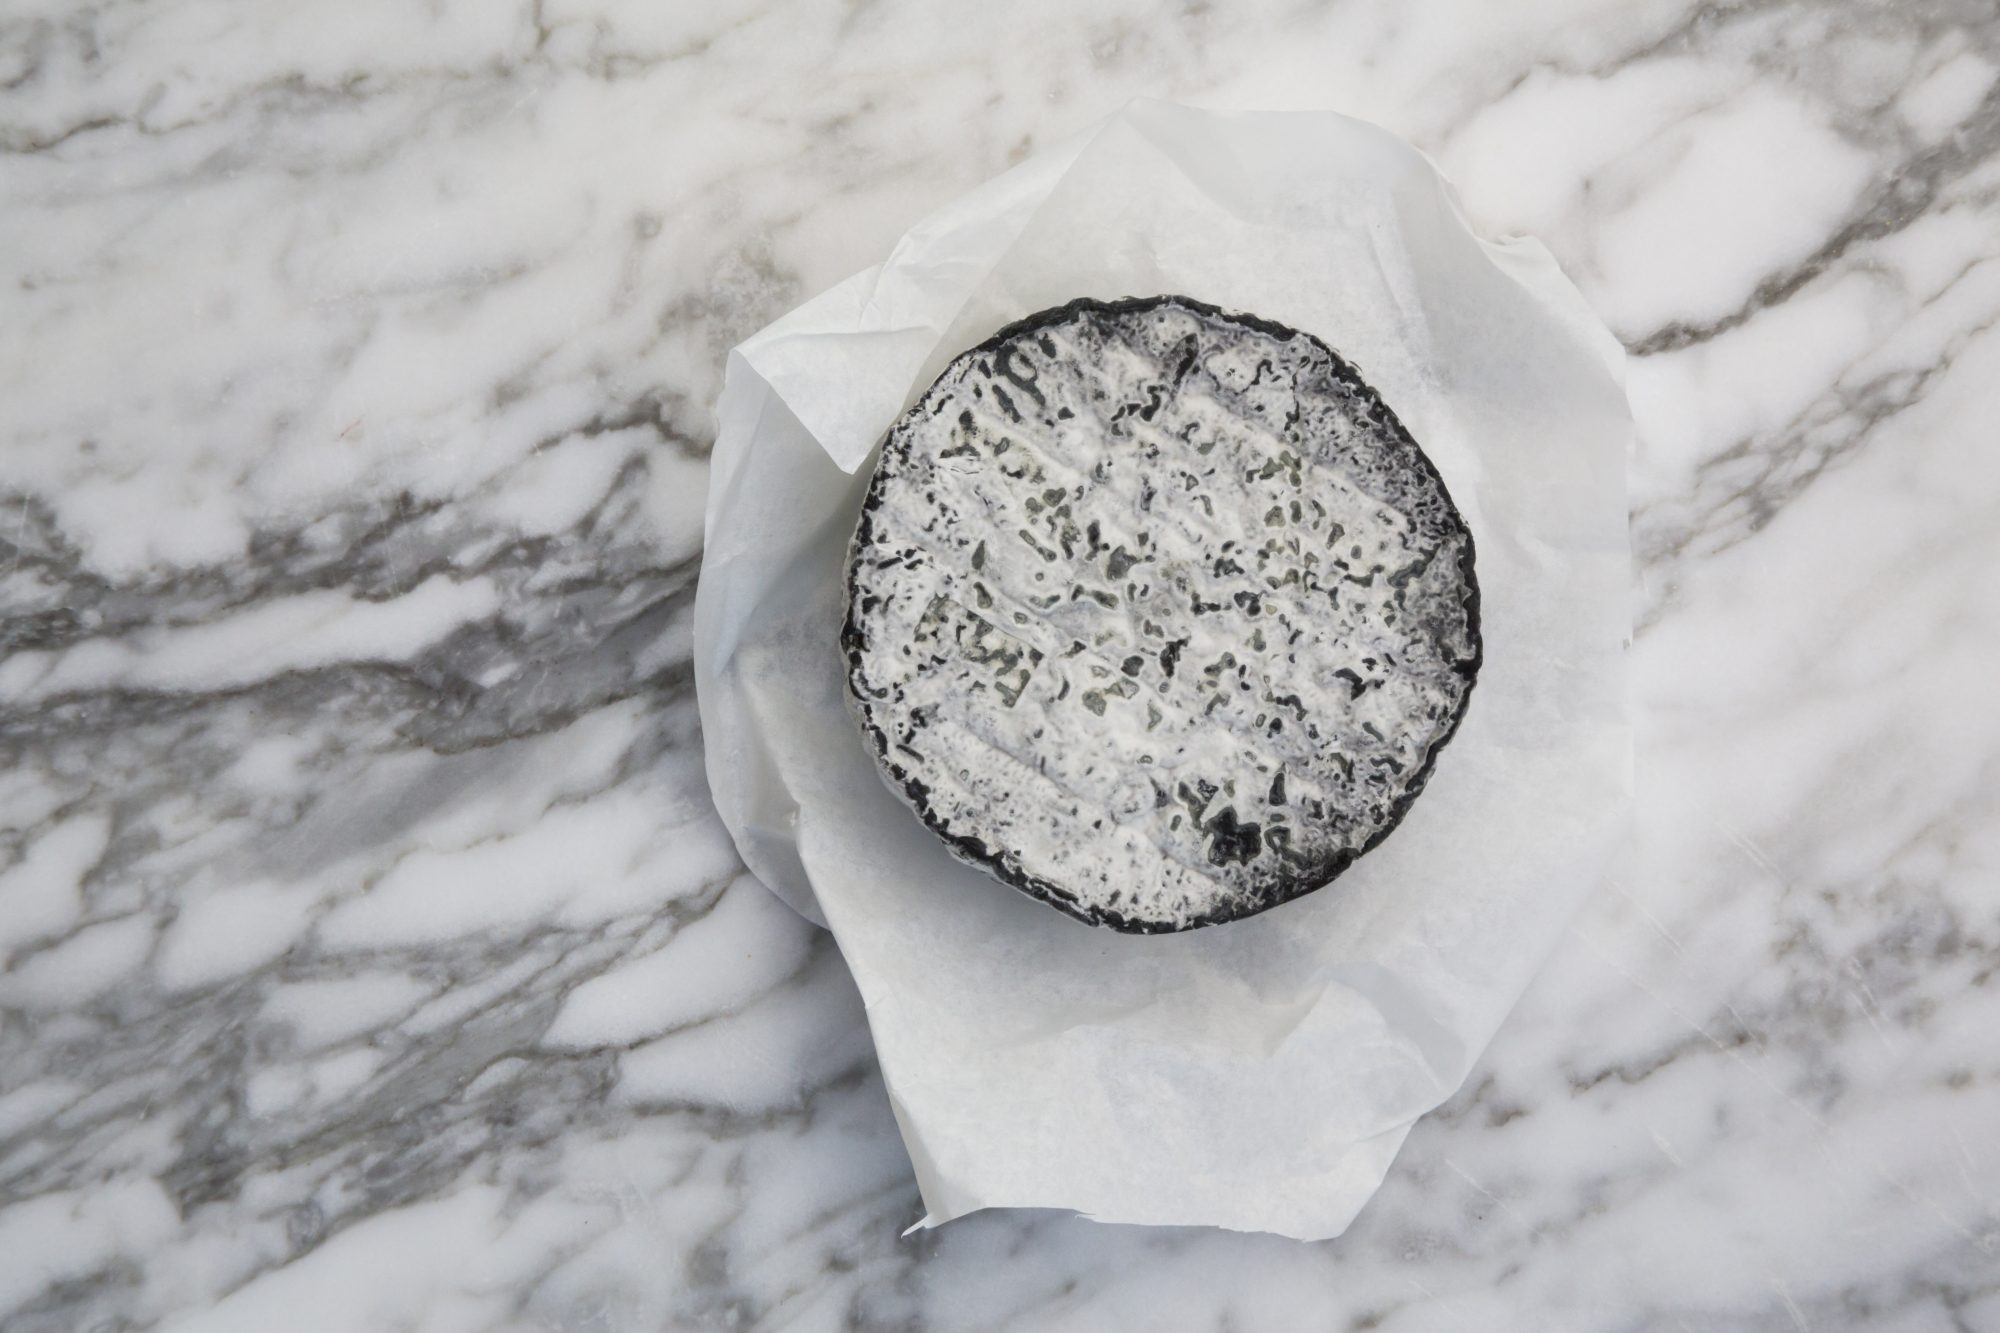 4 Common Mistakes People Make About Goat Cheese